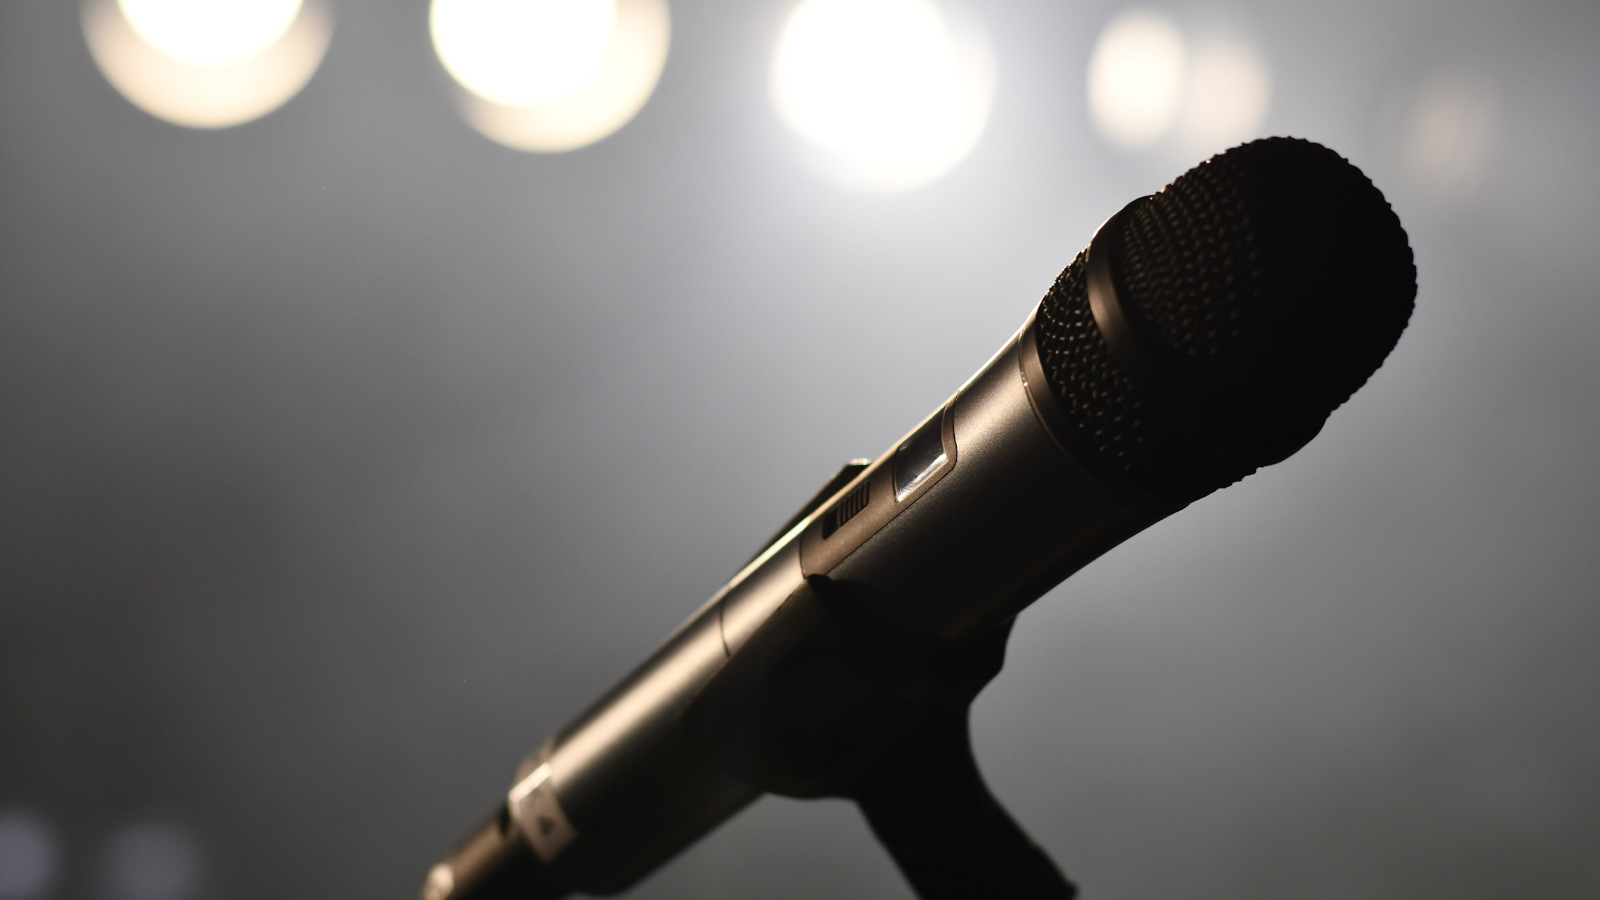 Mic on stage under lights